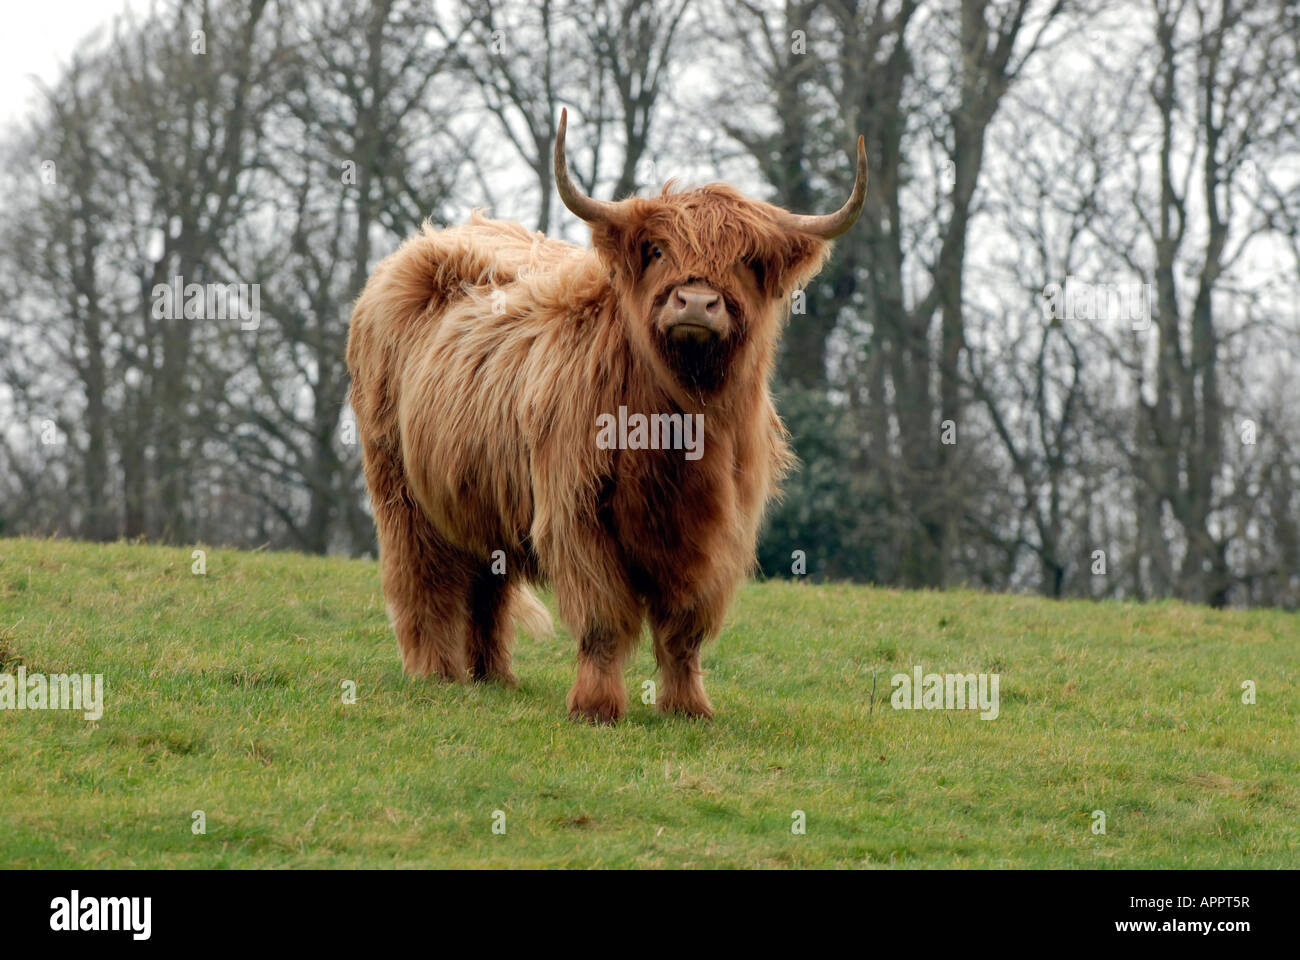 a long horned highland cattle rare breeds bull standing in a field looking puzzled and inquisitive - Stock Image